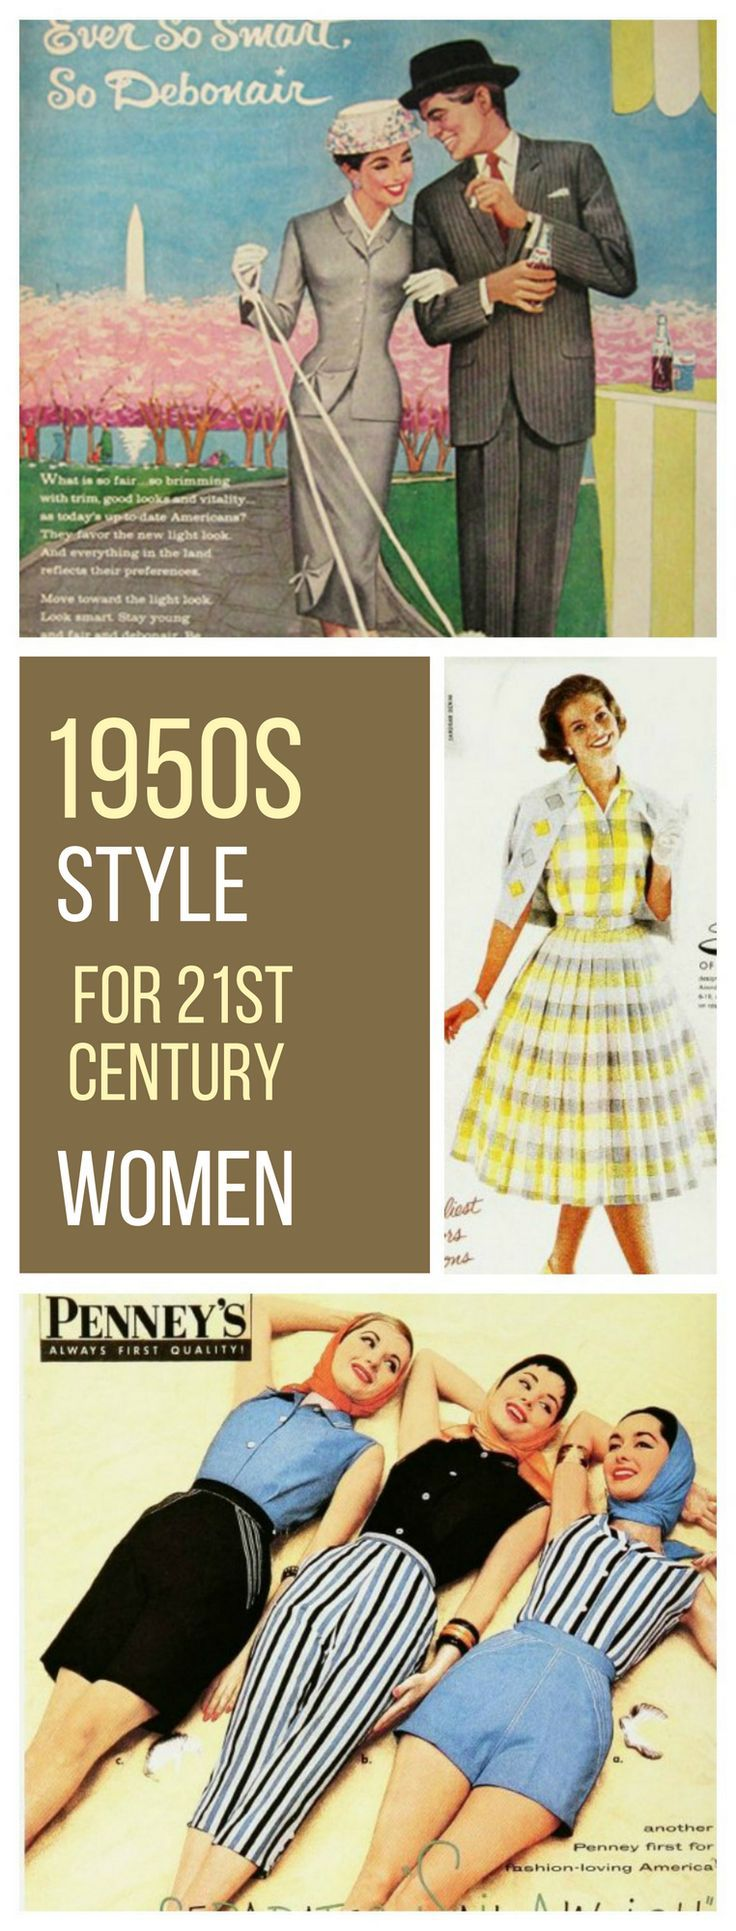 S womenus fashion style for st century women styles you dig